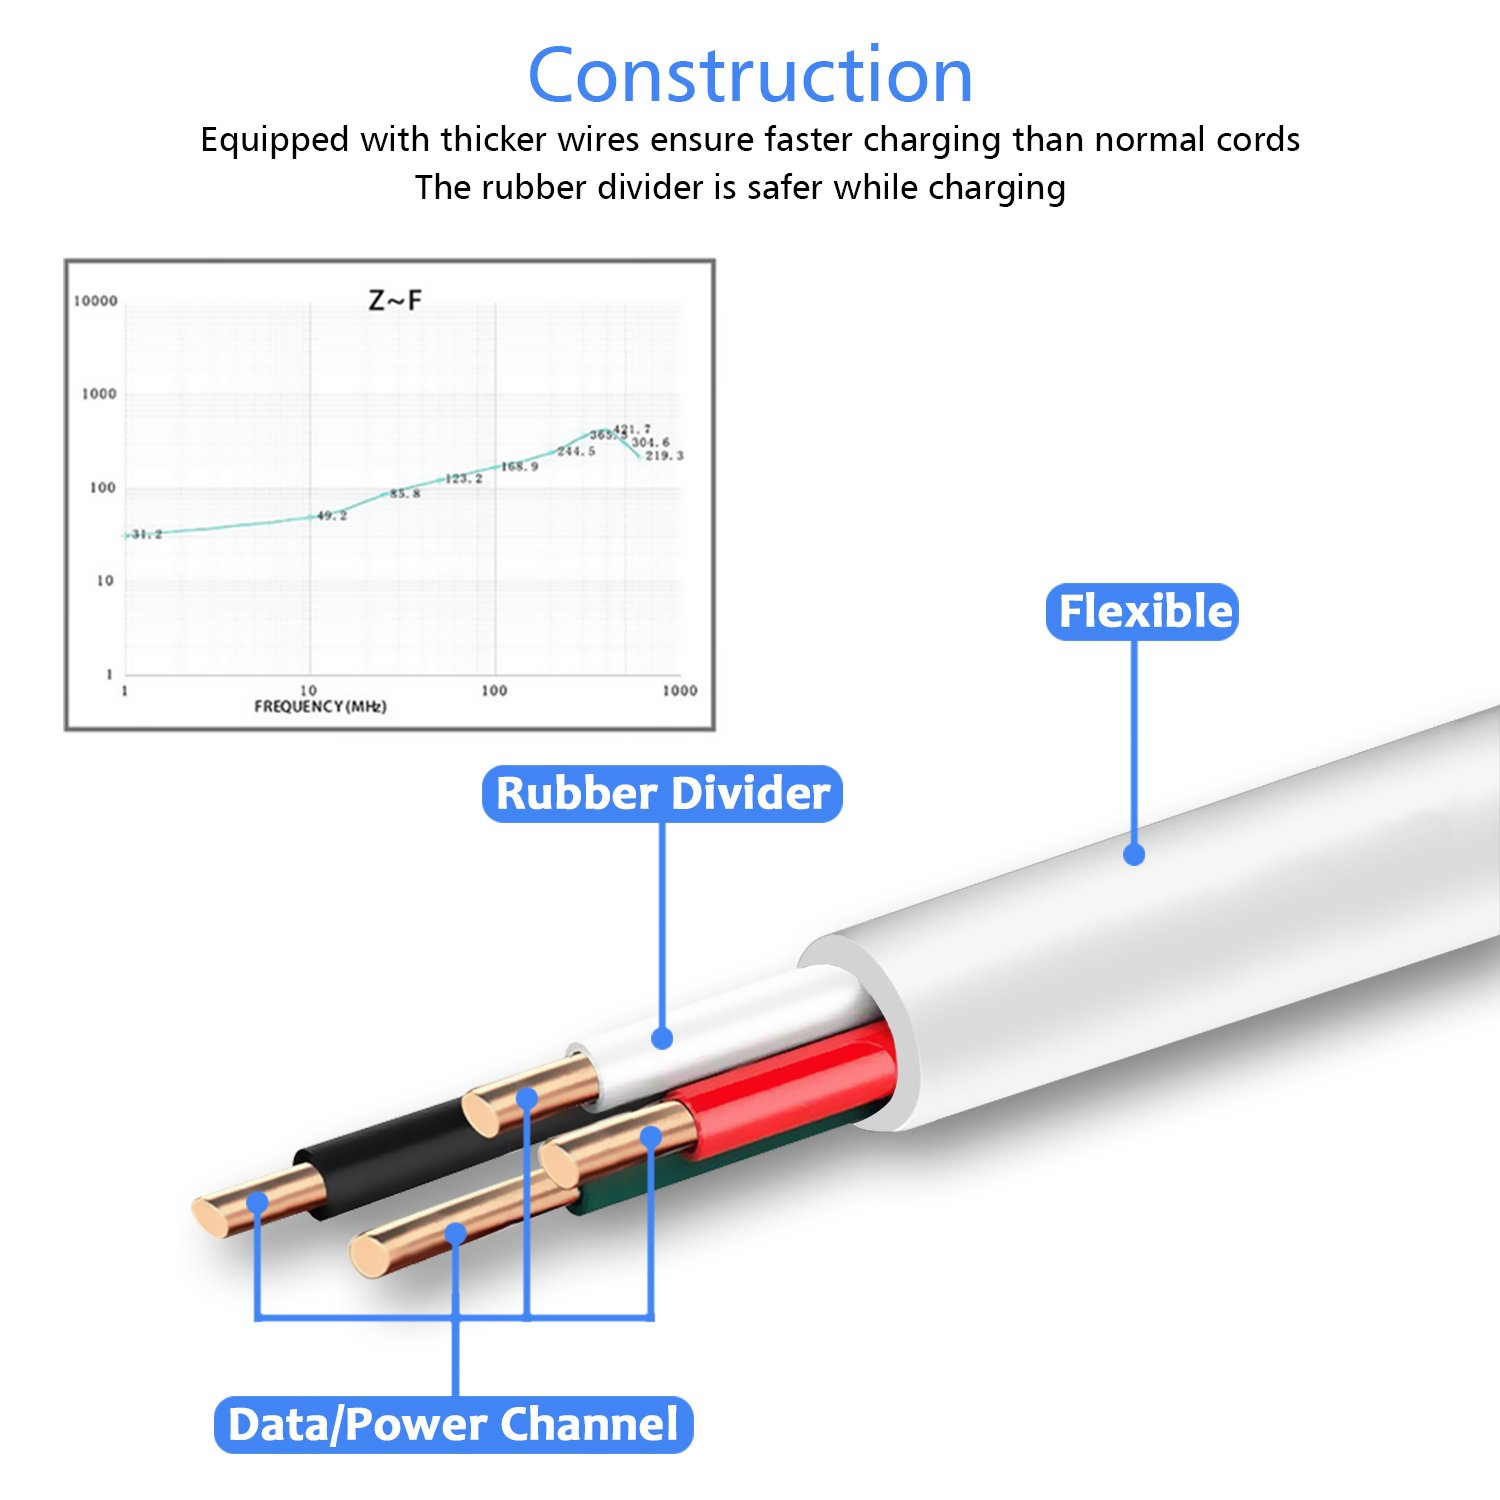 Micro Usb Charger Cable 15 Ft Durable Extra Long Apple Wiring Diagram Further Wires Nest 20 Charge Cord High Charging Speed For Android Windows